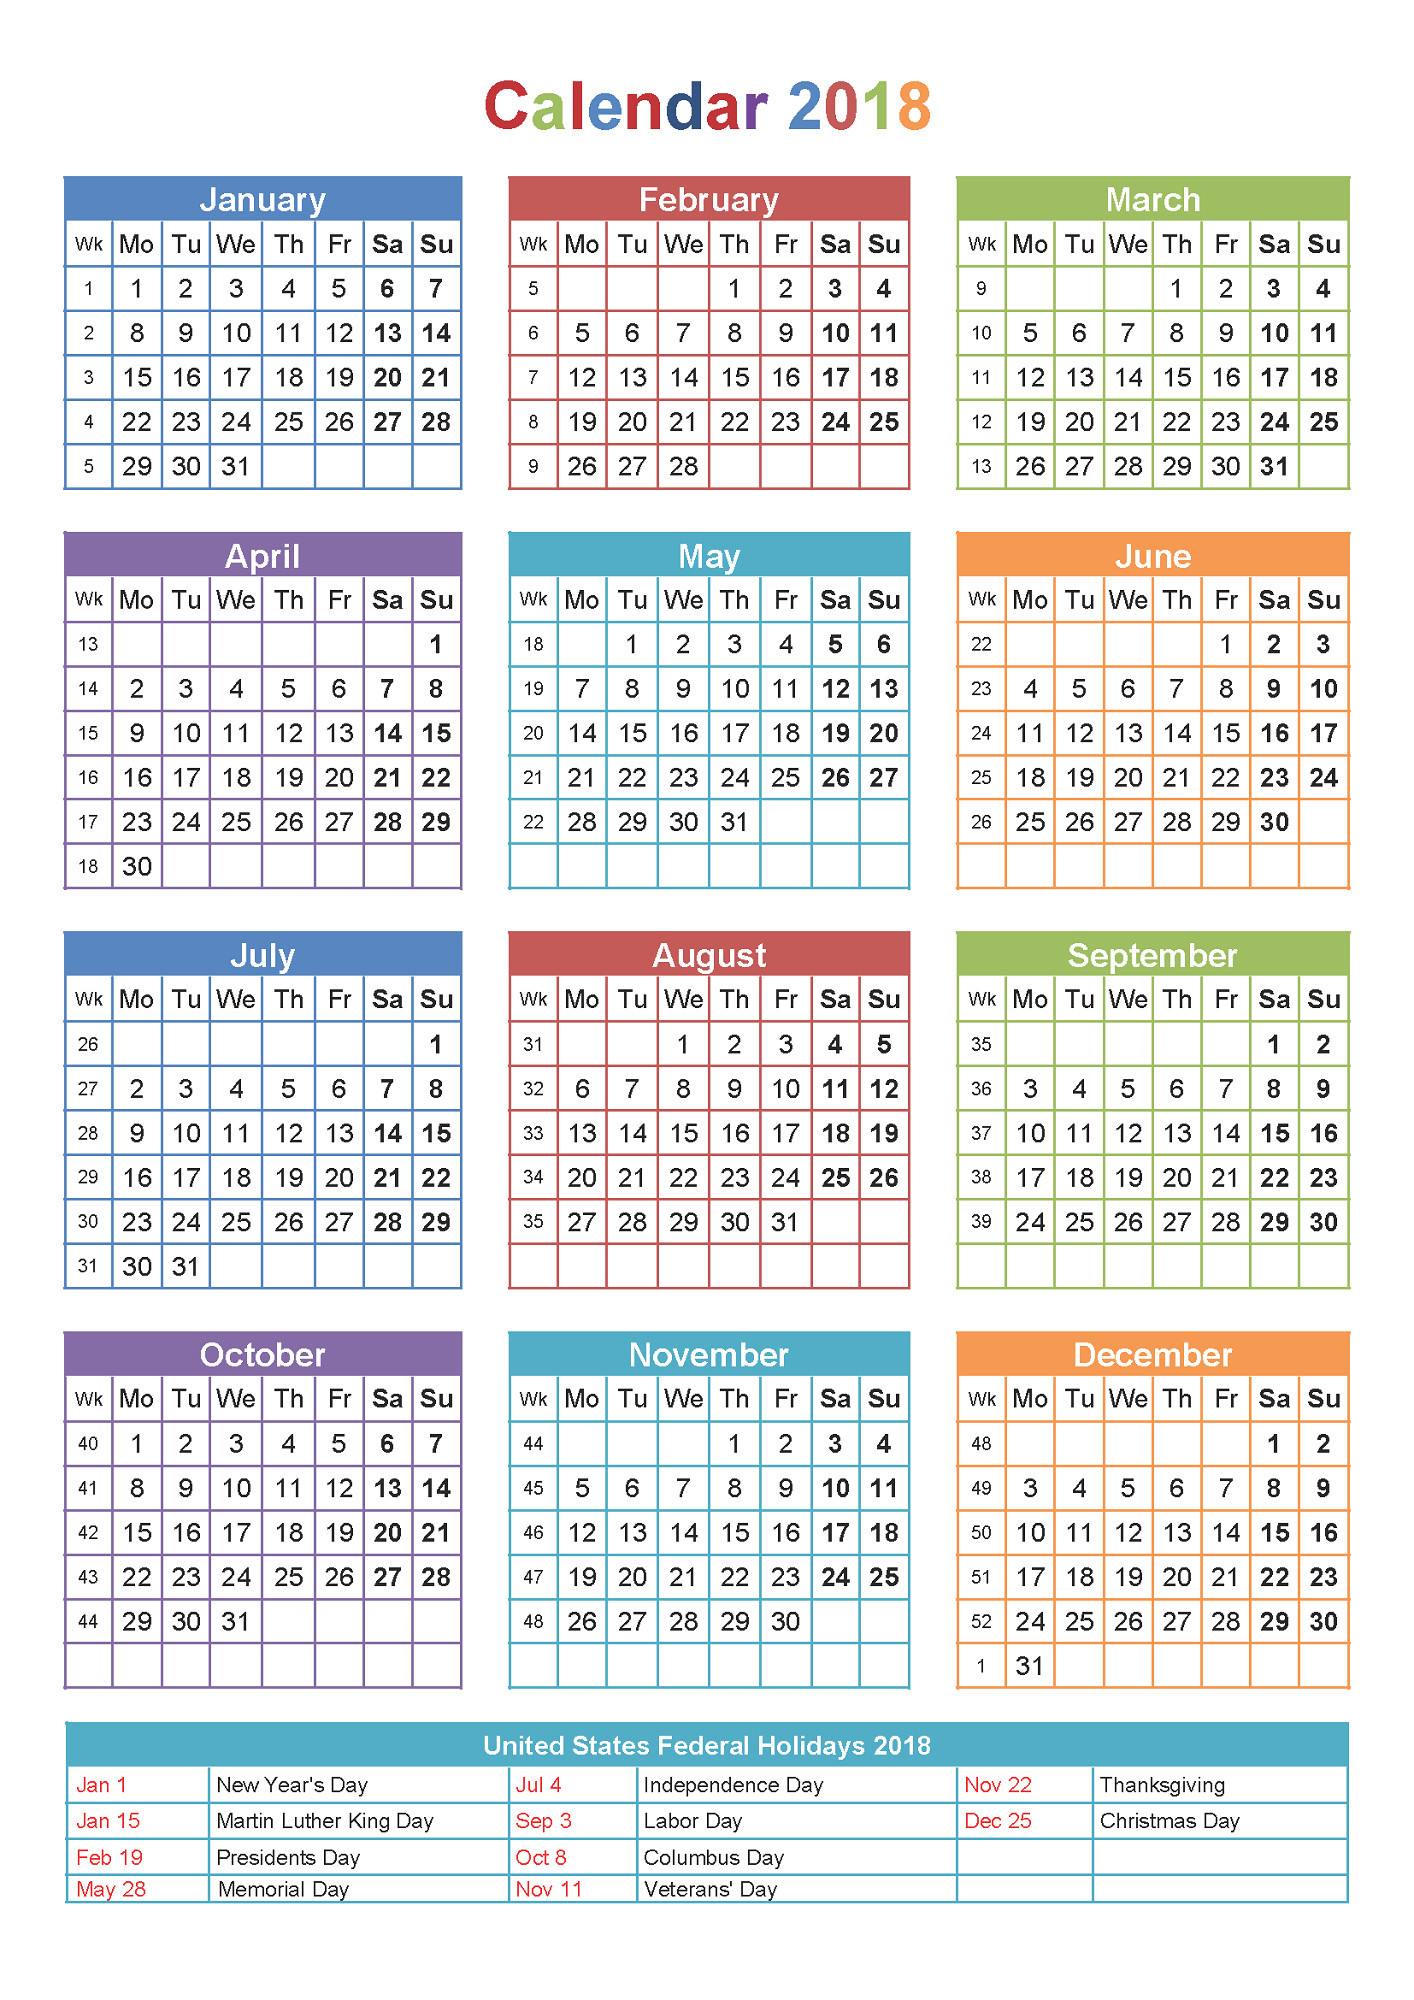 Calendar Free Download For Pc : Desktop wallpapers calendar may ·①